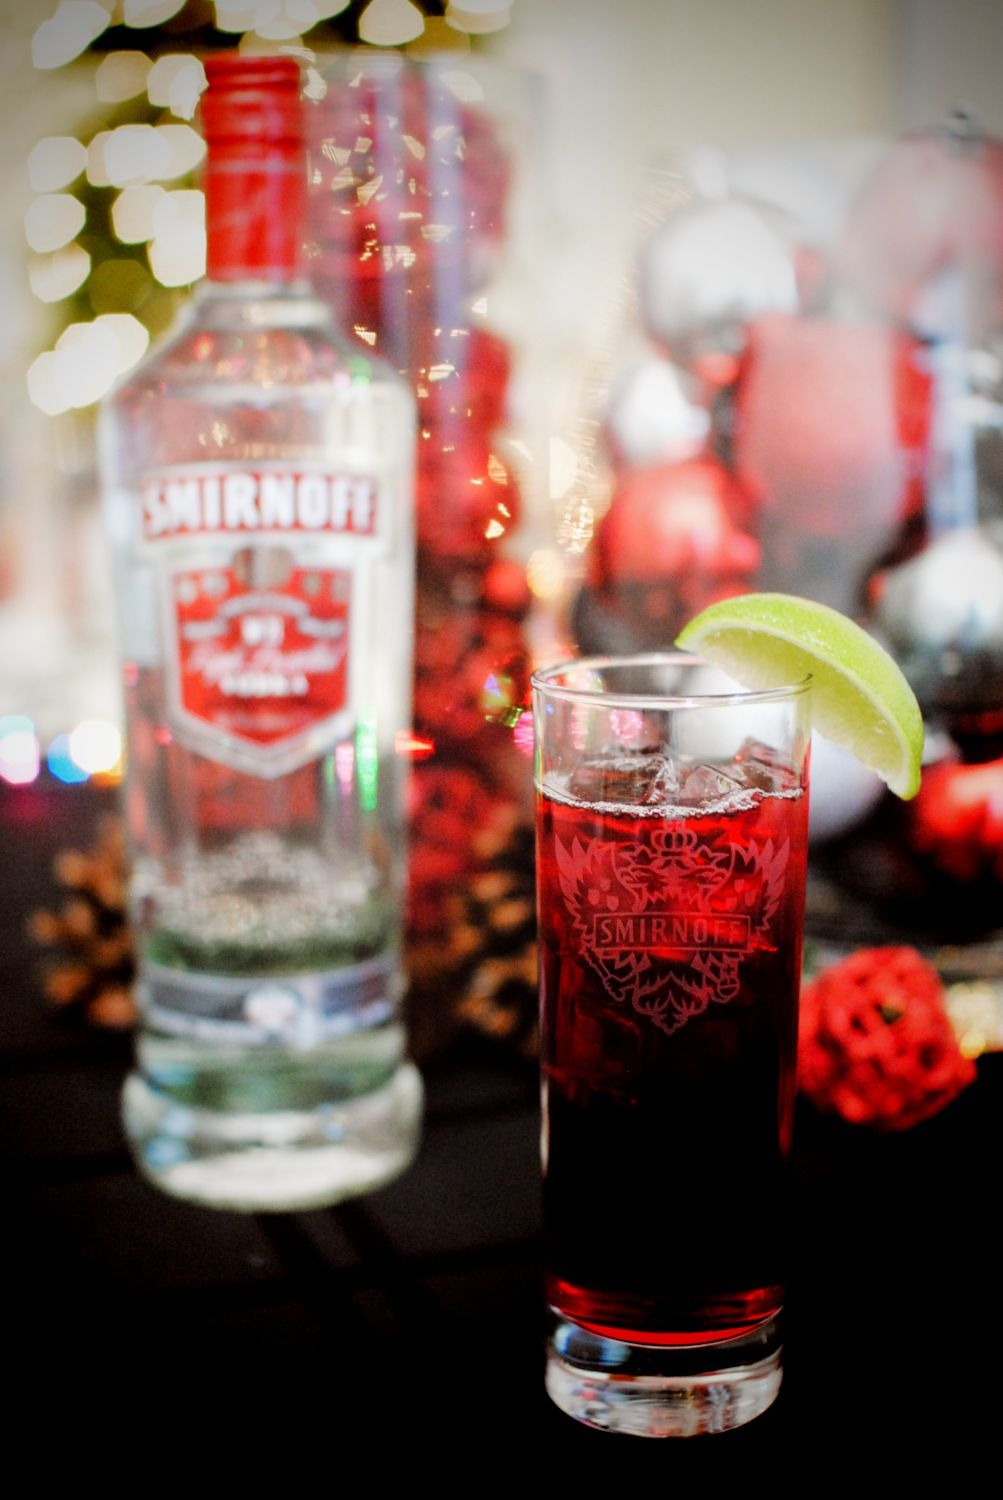 Woo Woo Drink Recipe 1 Oz Smirnoff No 21 Vodka 1 Oz Stirrings Peach Flavored Liqueur 2 5 Oz Cran Easy Holiday Drinks Summertime Drinks Cranberry Cocktail